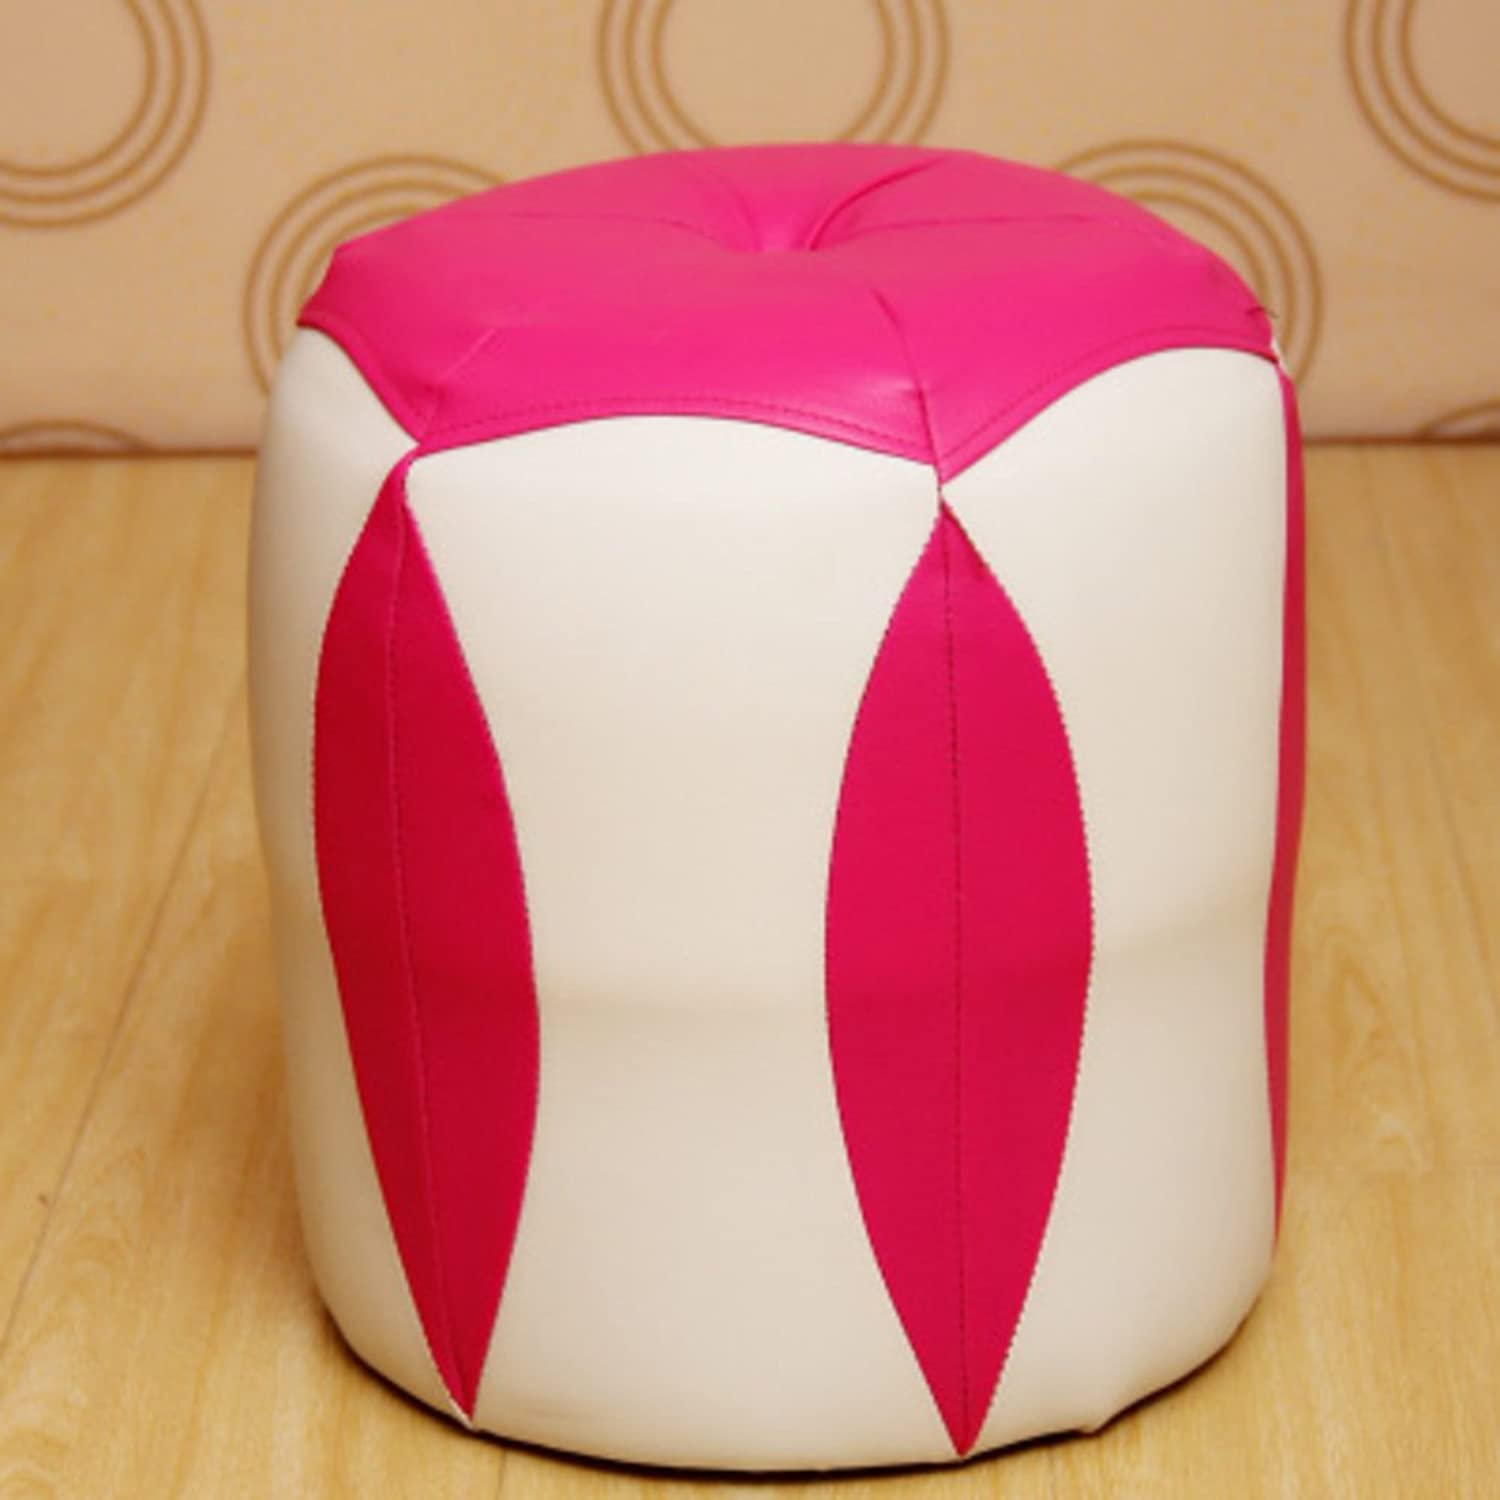 HM&DX Change shoes Stool Round Stool Wooden Leather Stool Simple Modern Creative Toilet Stool Table Stool Small Bench-taobao-pink